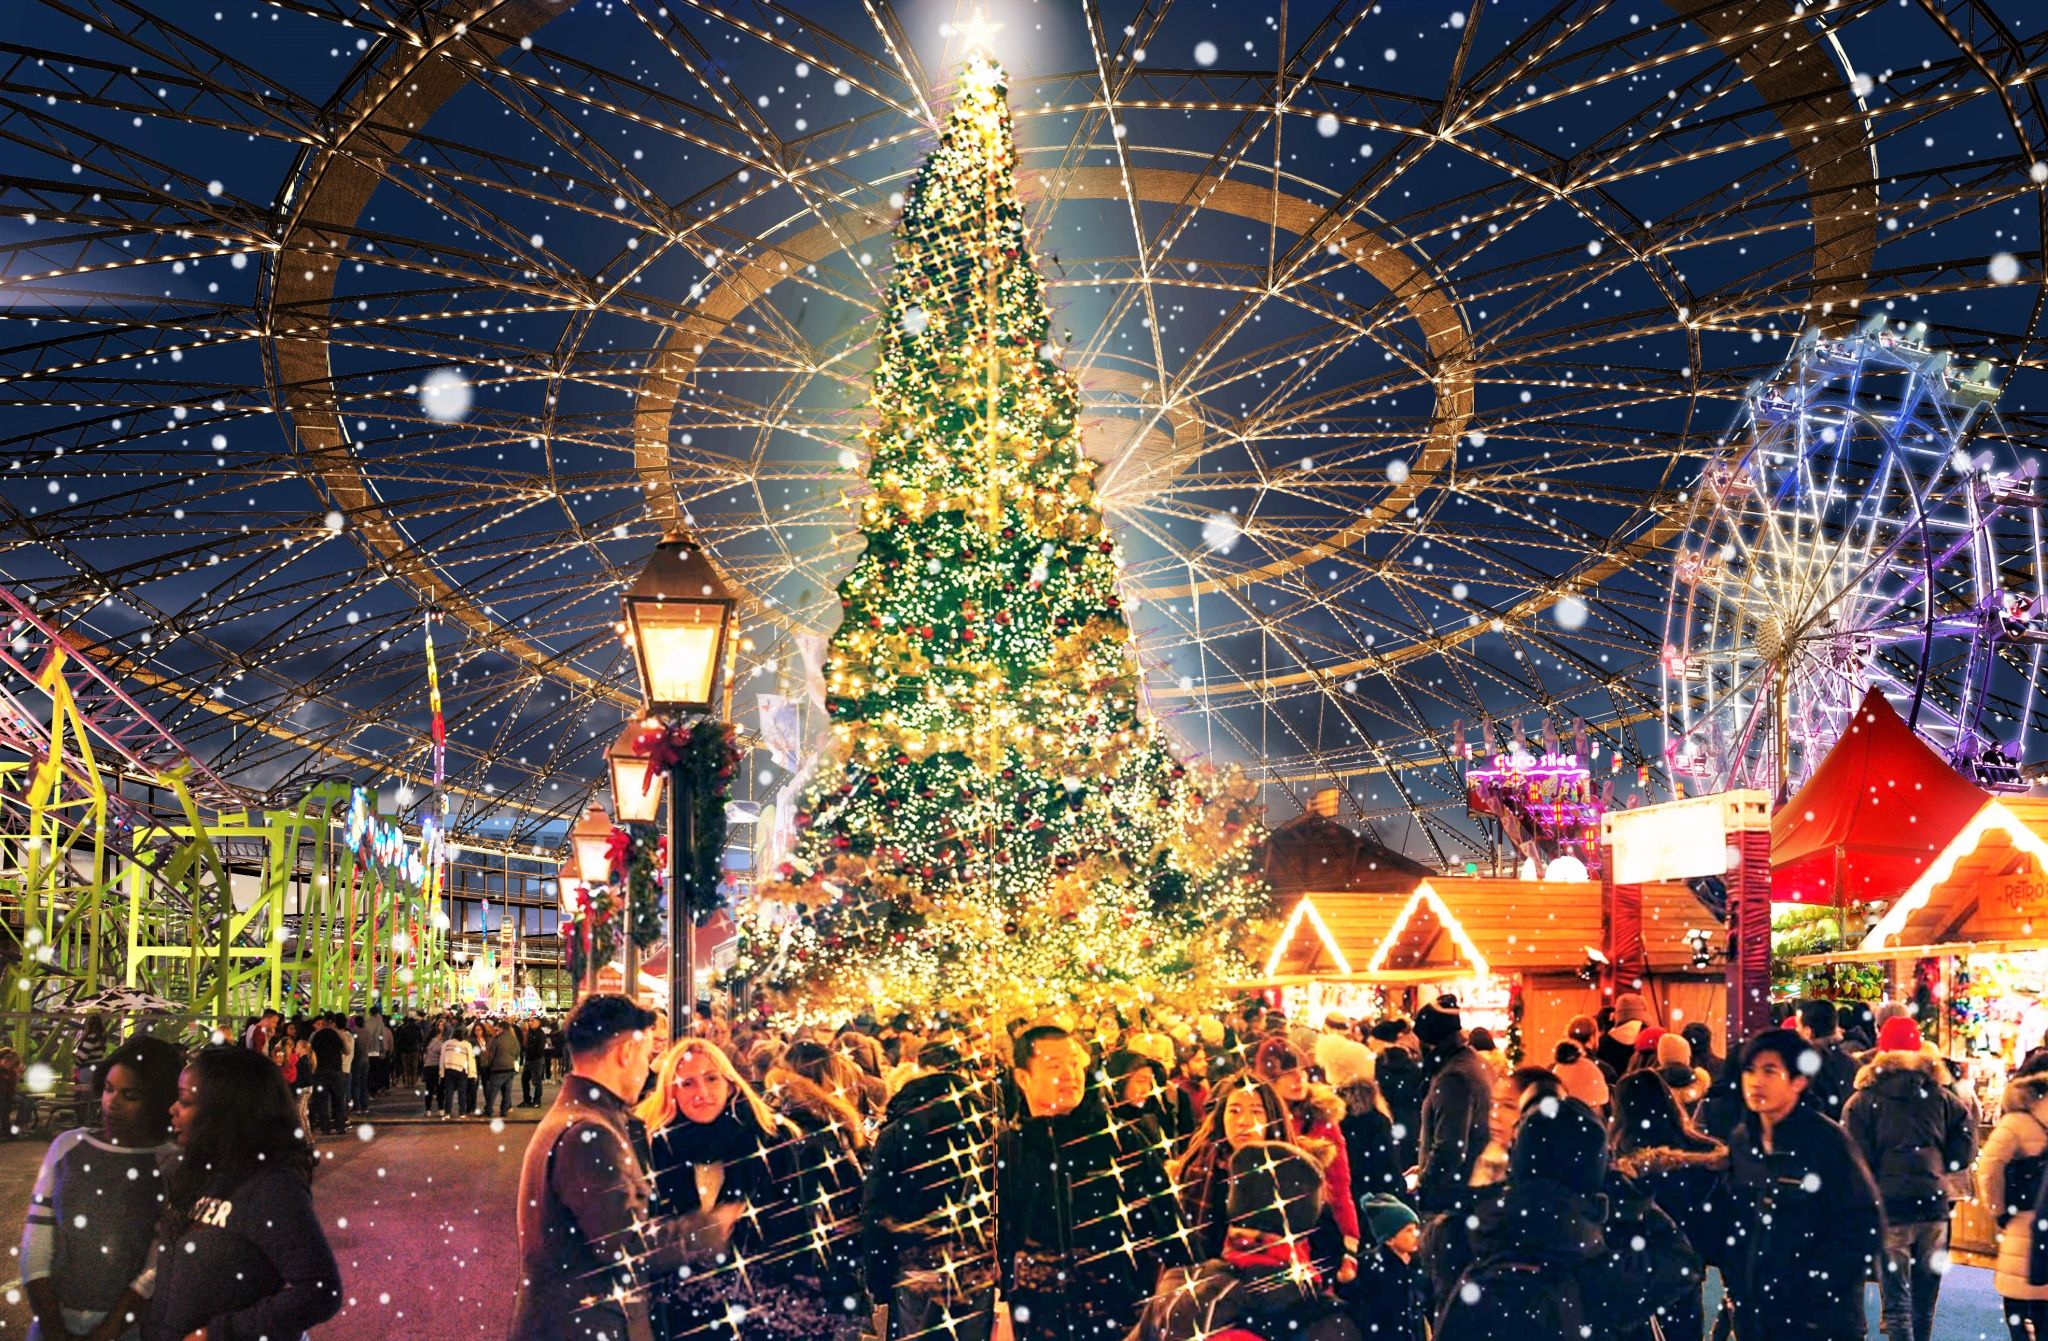 Christmas Festival Houston 2021 These Houston Holiday Markets Have Your Gift List Covered